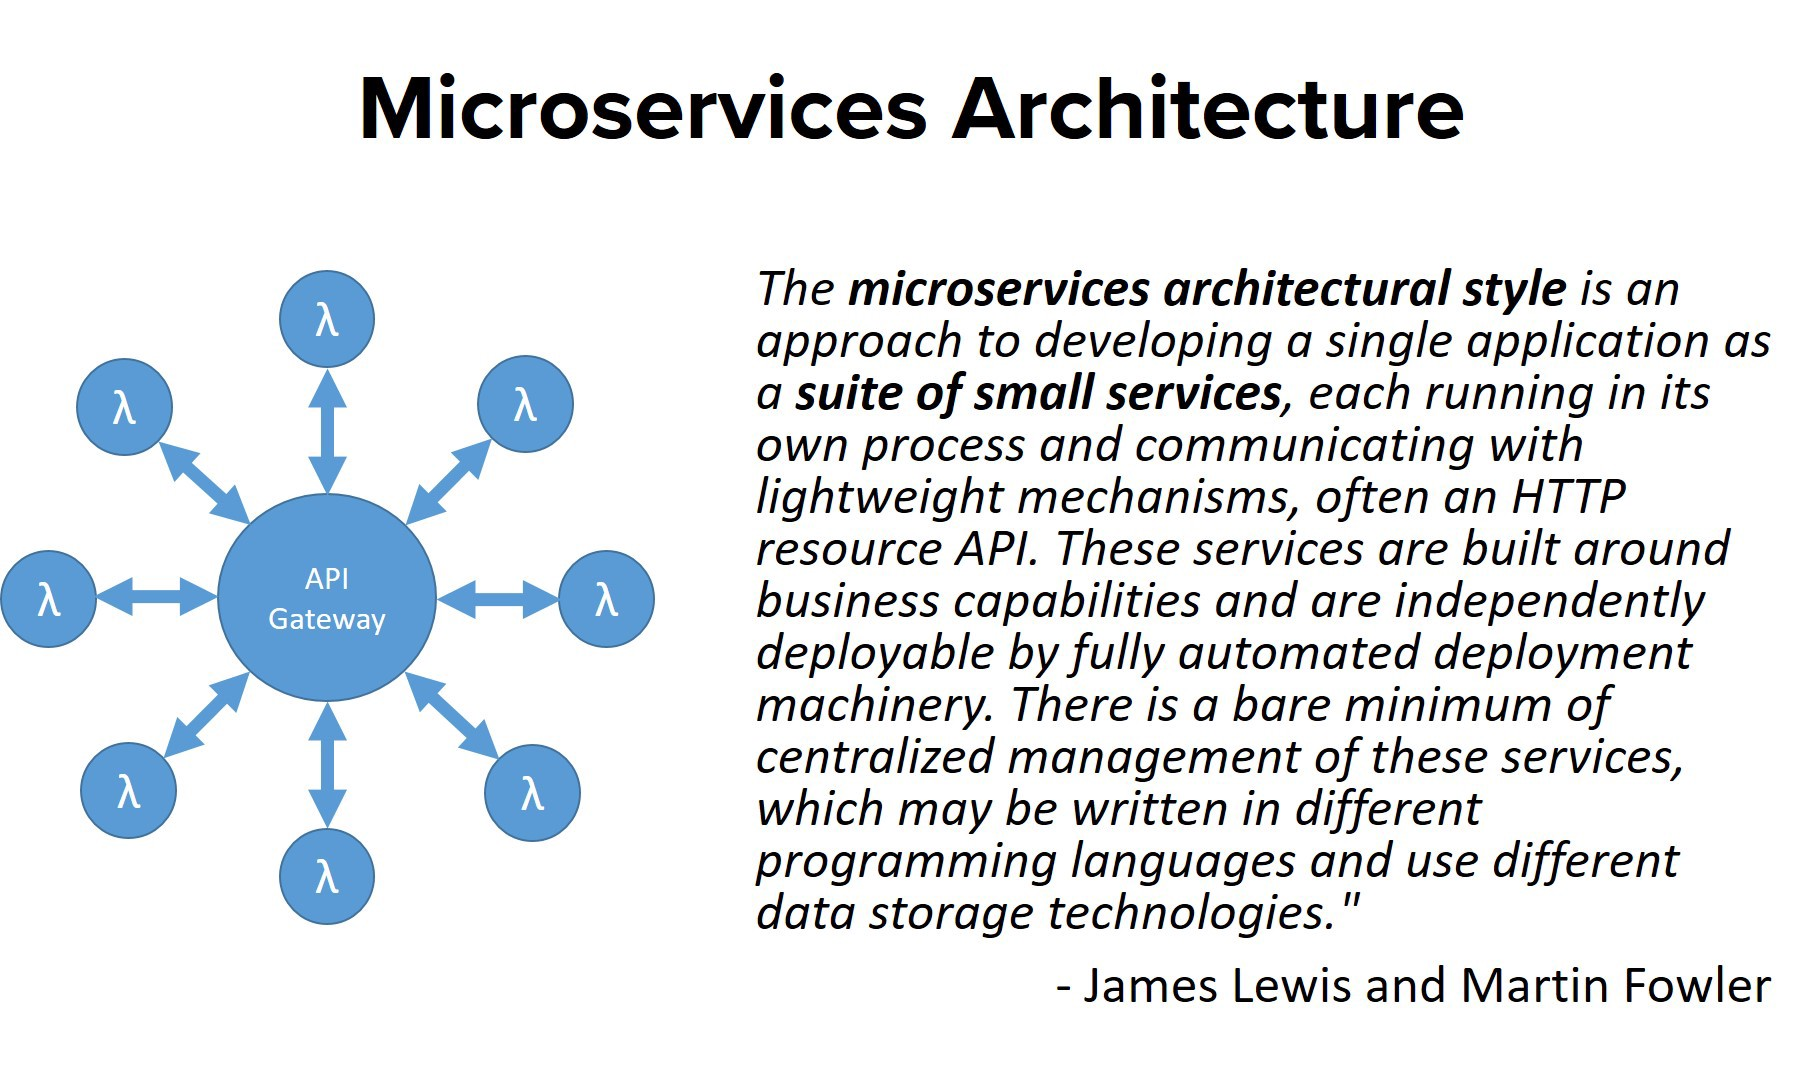 Building Serverless Microservices on AWS - Riyaz - Medium